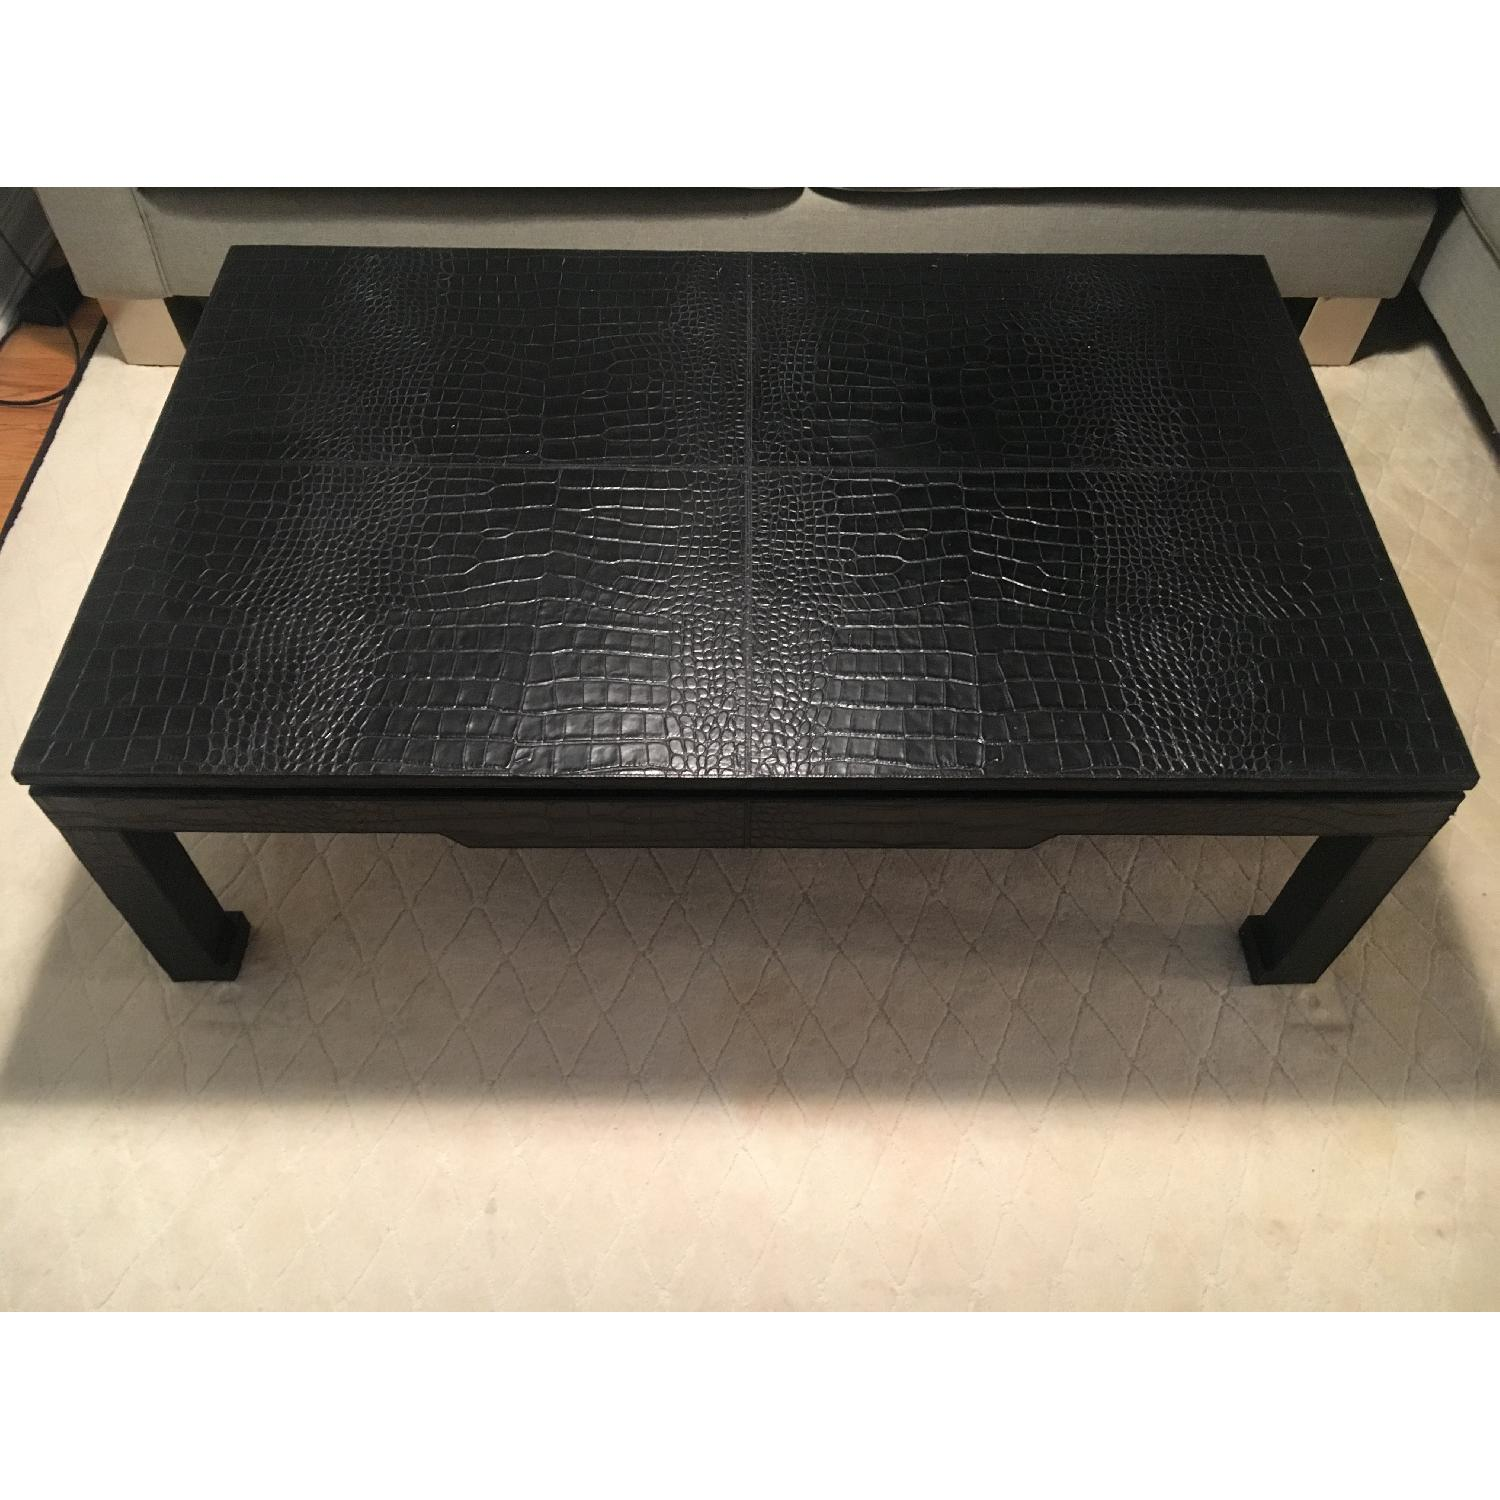 Jonathan Adler Croc-Embossed Leather Cocktail Table w/ Ming Feet - image-3